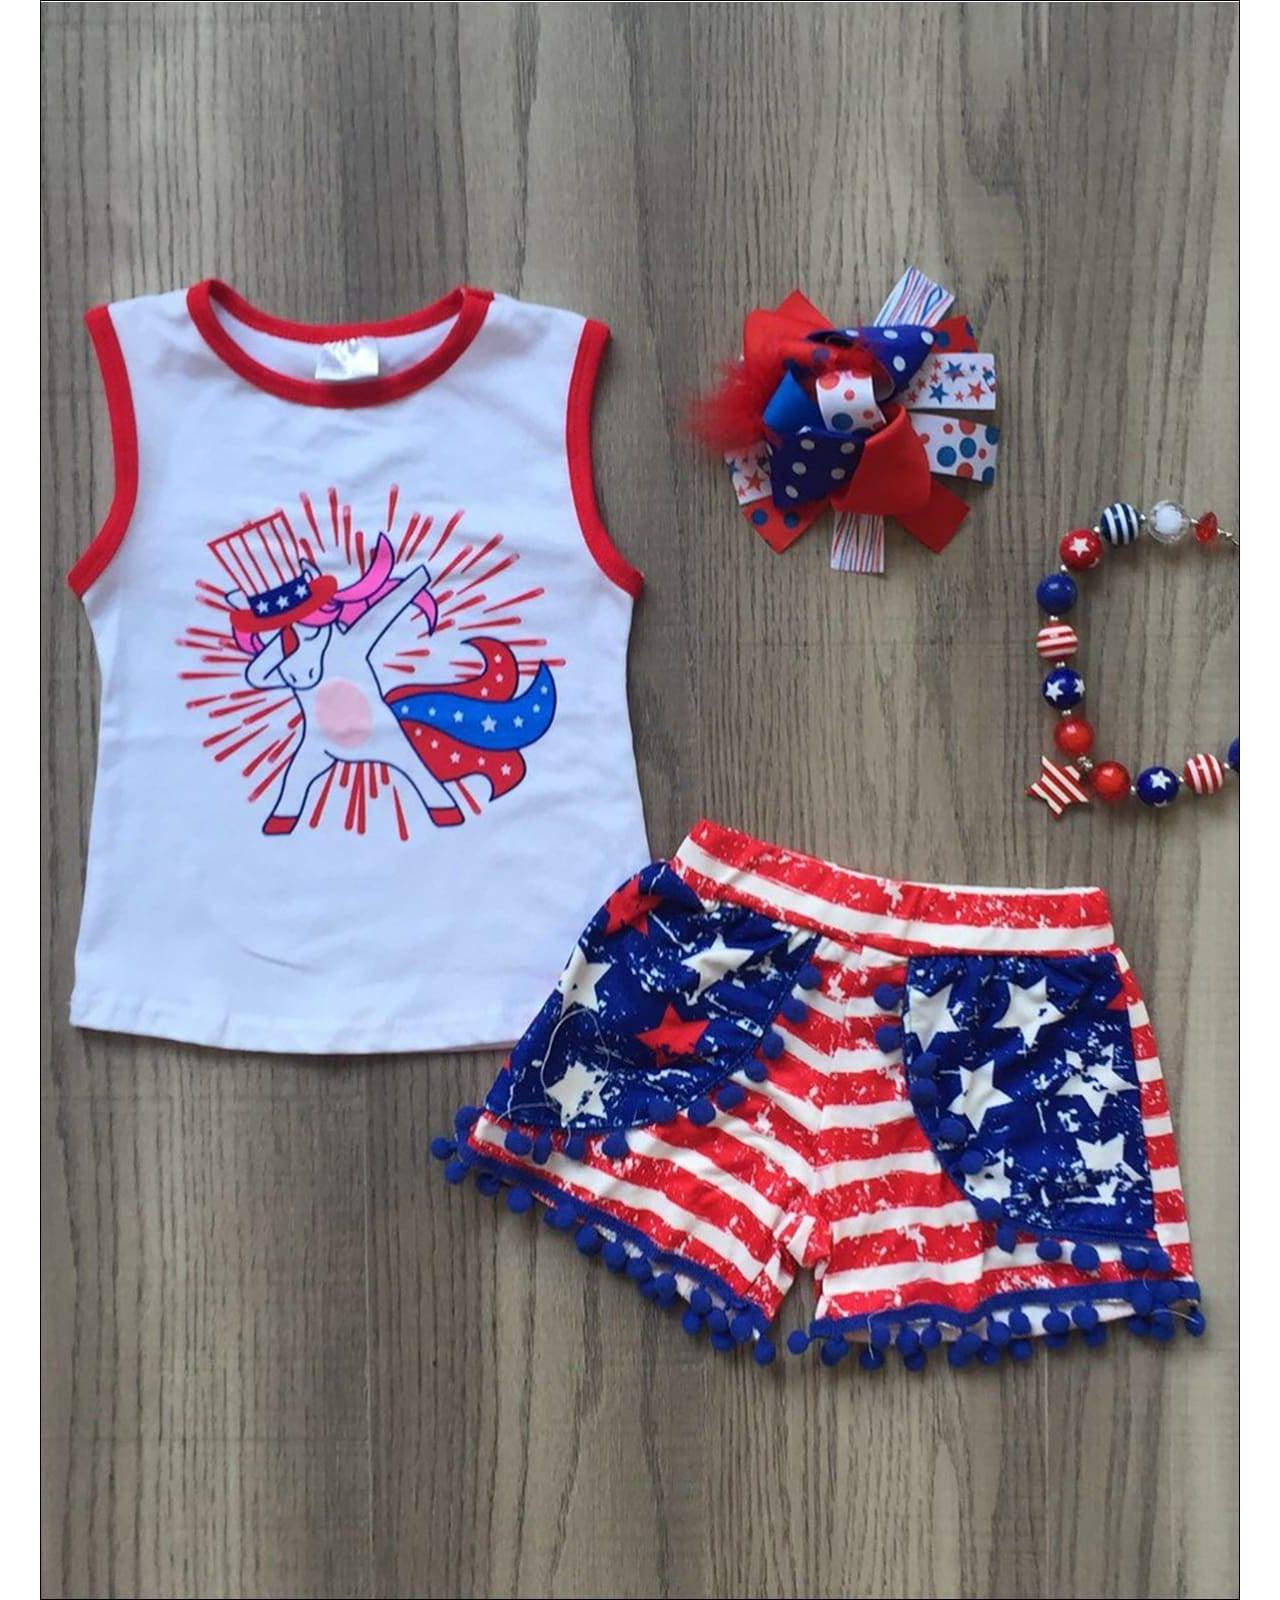 TuTu Shorts Set Baby Girl 4th of July Patriotic Outfit US Flag Print Vest Tops